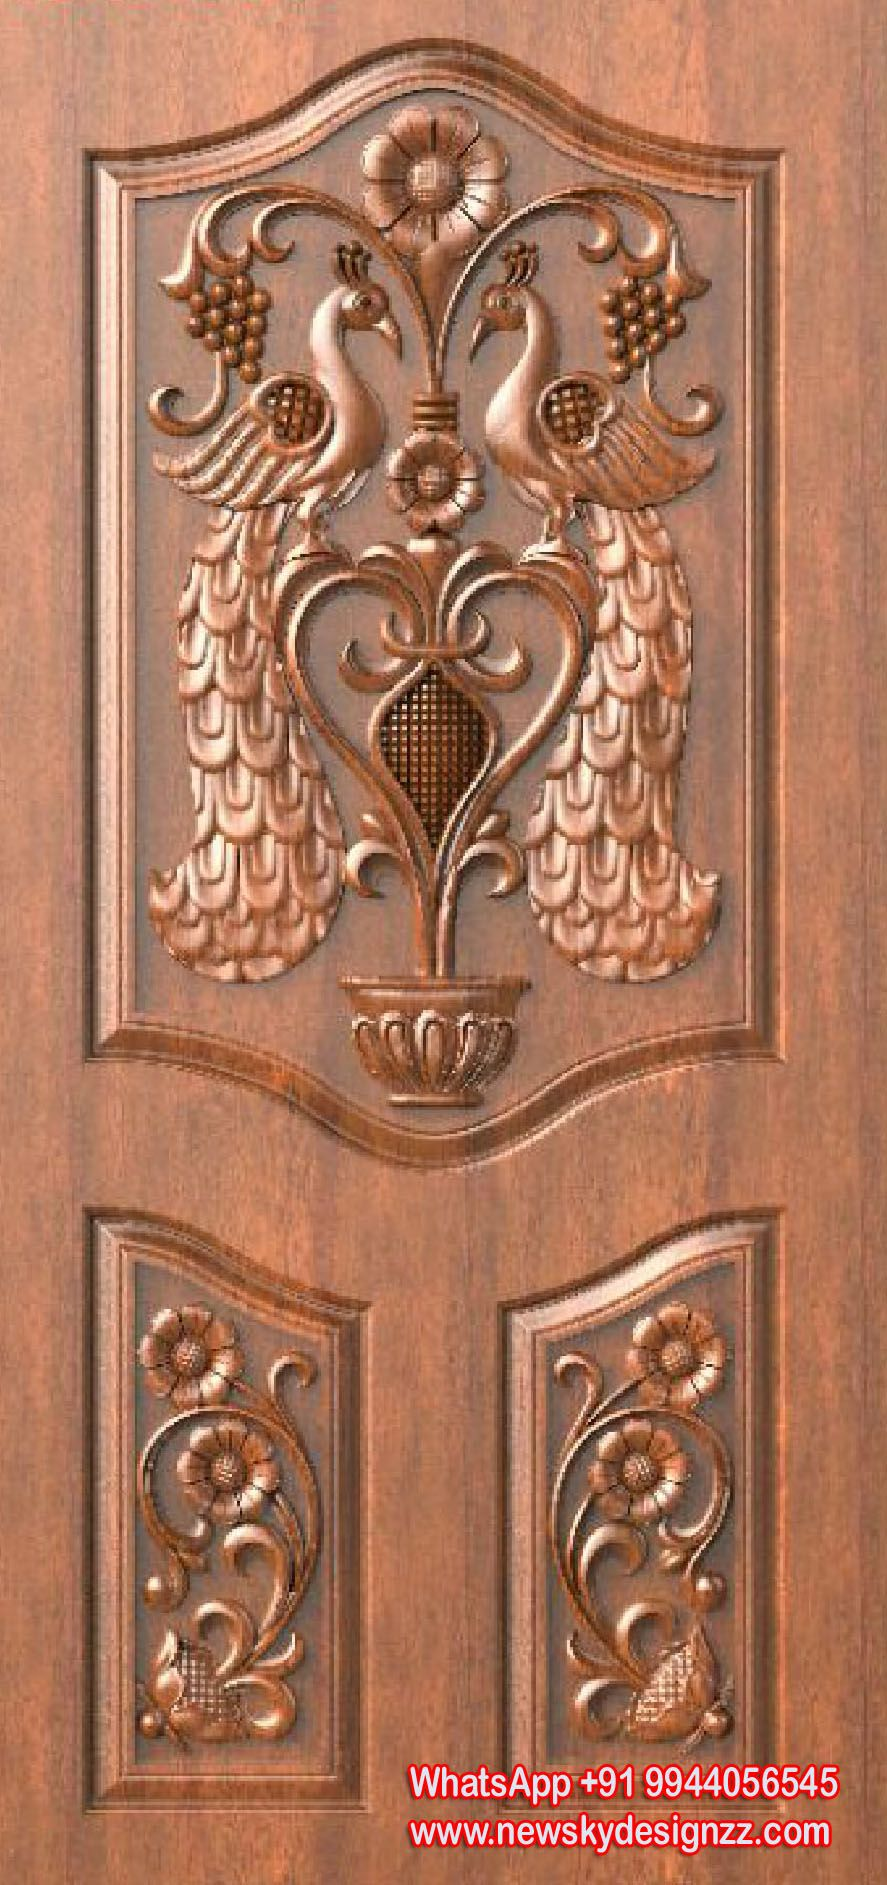 Main Door Design Door Design Modern Wood: Door Design Wood, Wooden Main Door Design, Front